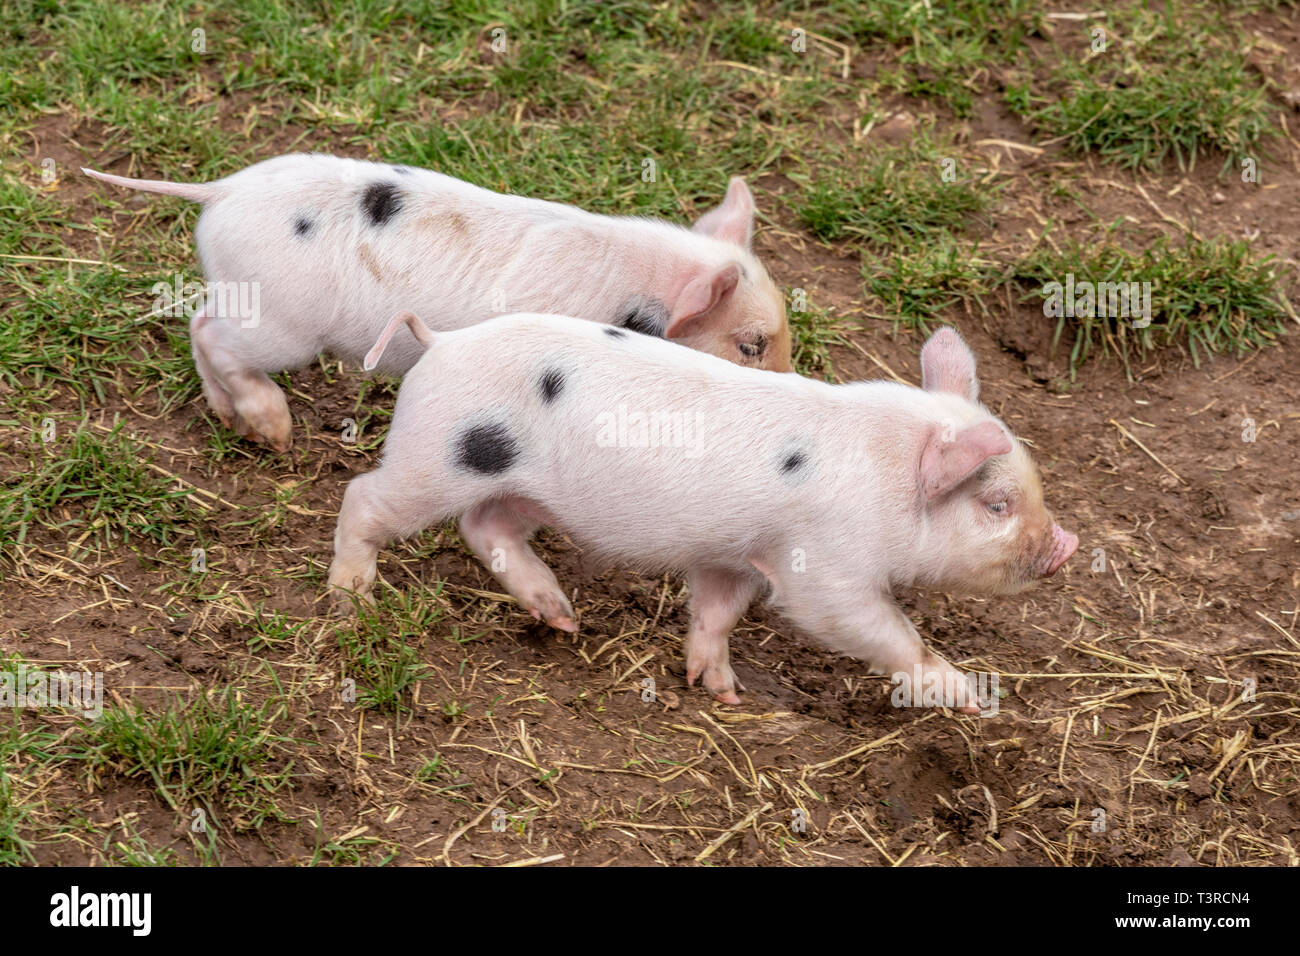 Two you Gloucester Old Spot piglets having a run at Cotswold Farm Park, Kineton, Gloucestershire UK - Stock Image